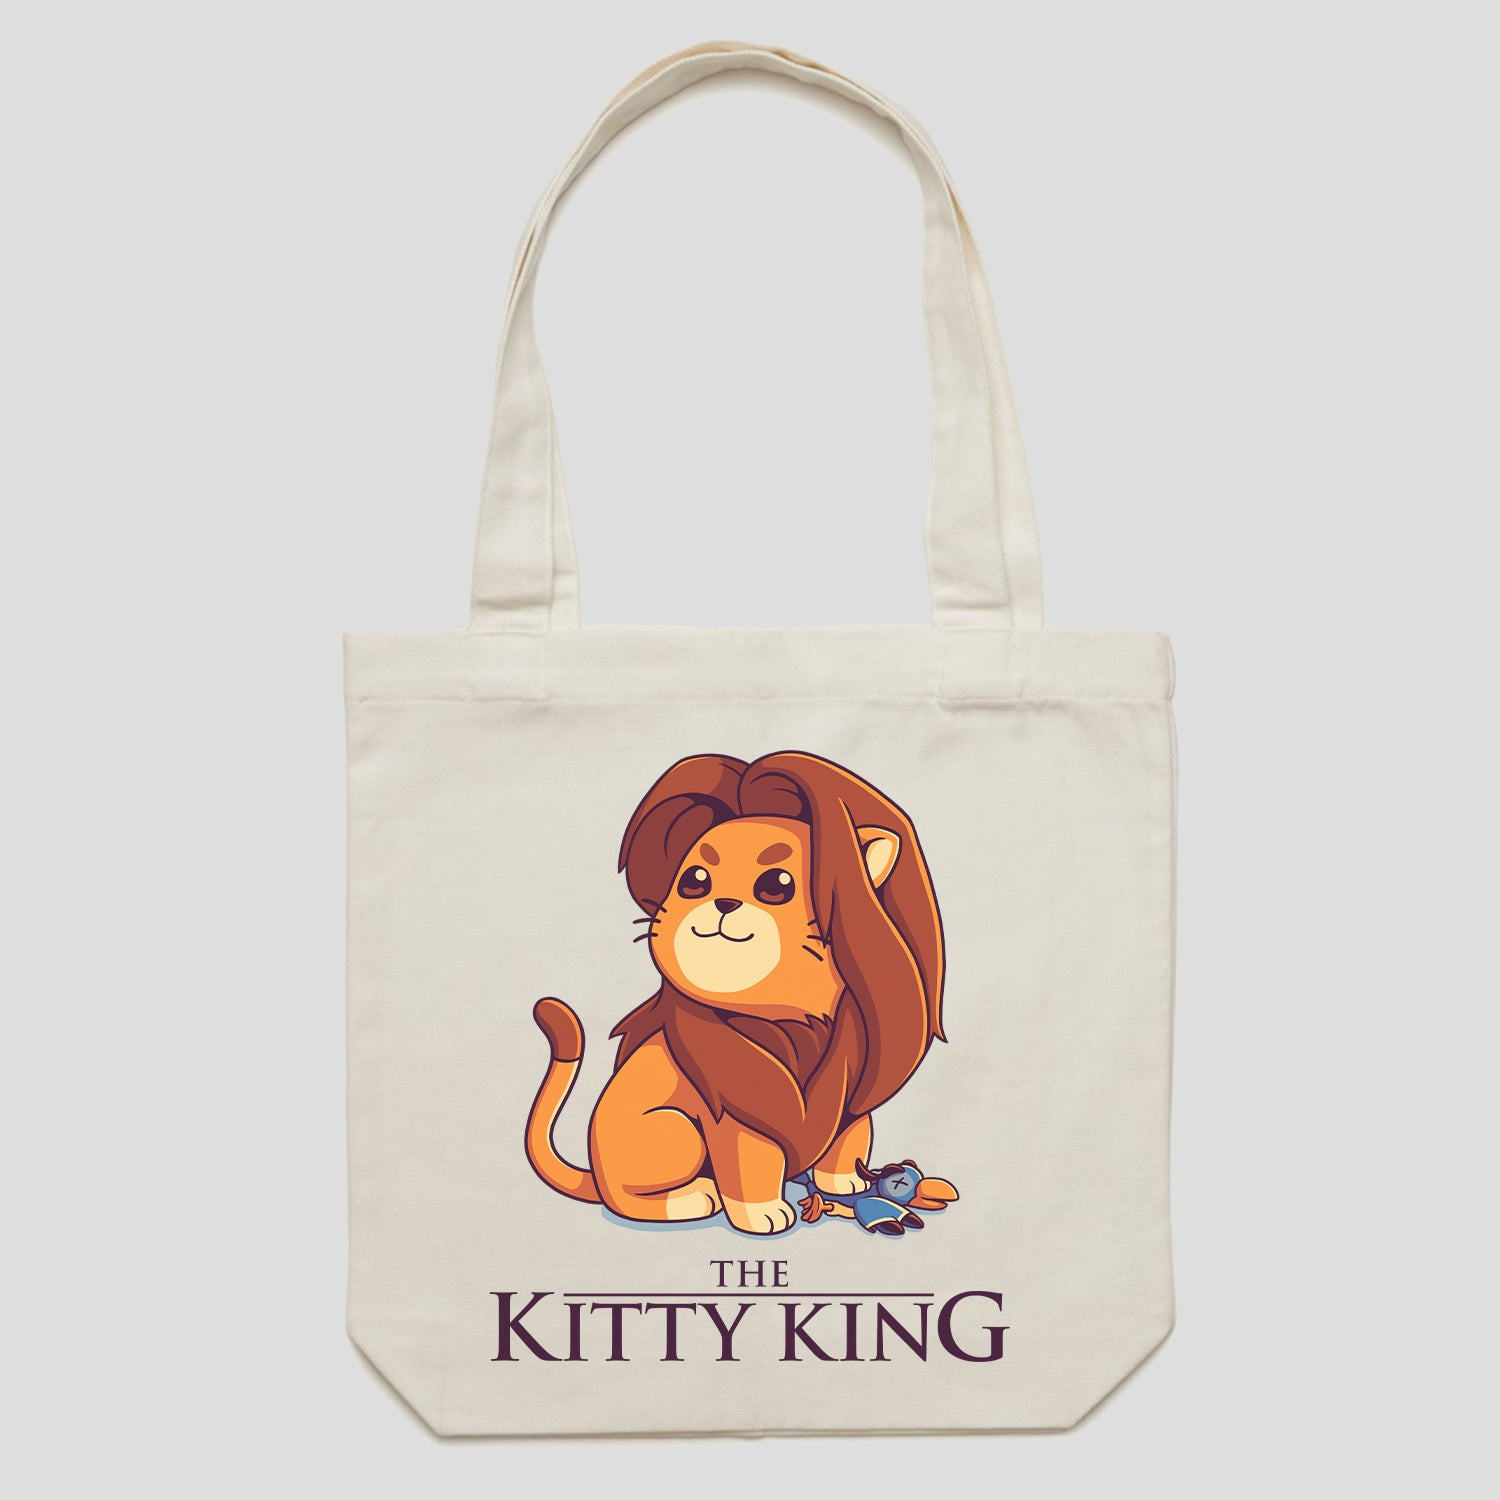 Lion King Cats Cool Totebags Australia